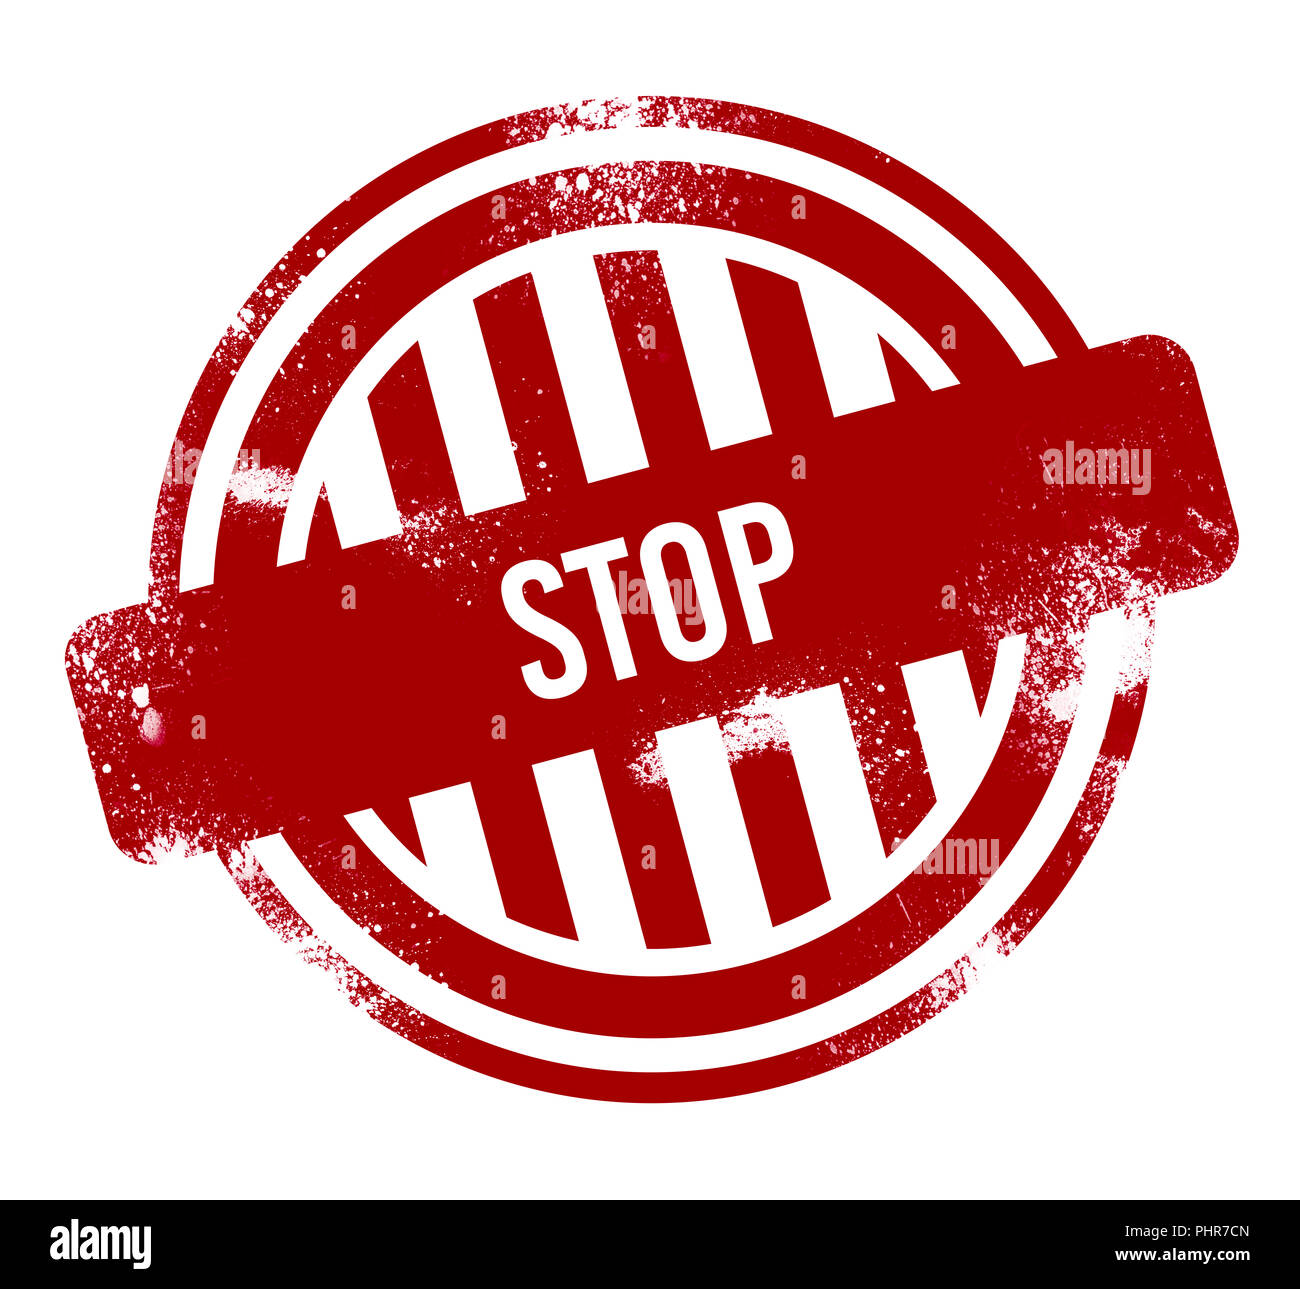 Stop - red grunge button, stamp - Stock Image